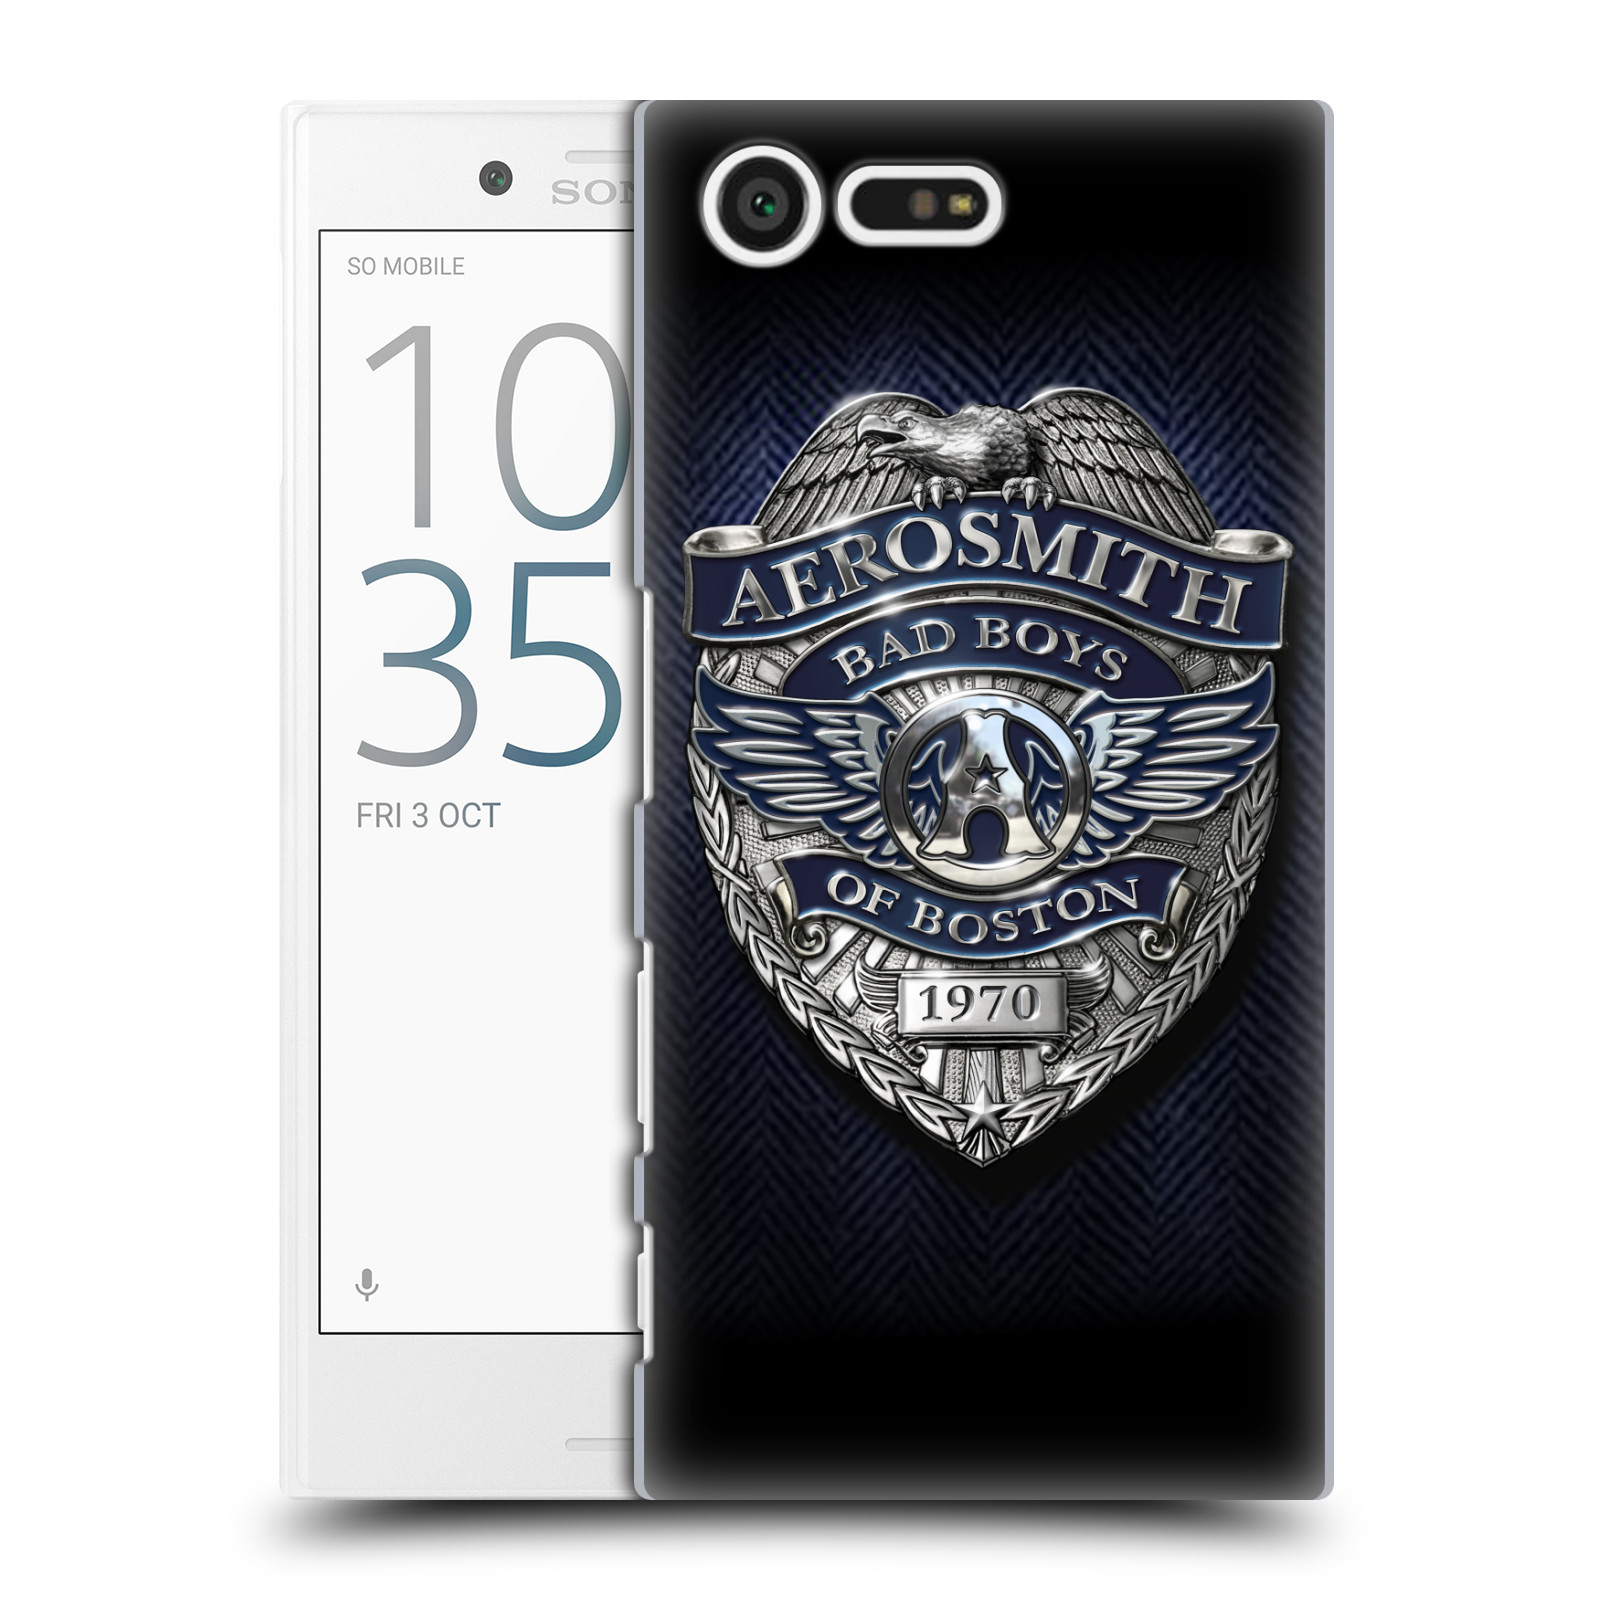 Plastové pouzdro na mobil Sony Xperia X Compact HEAD CASE - Aerosmith - Bad Boys of Boston